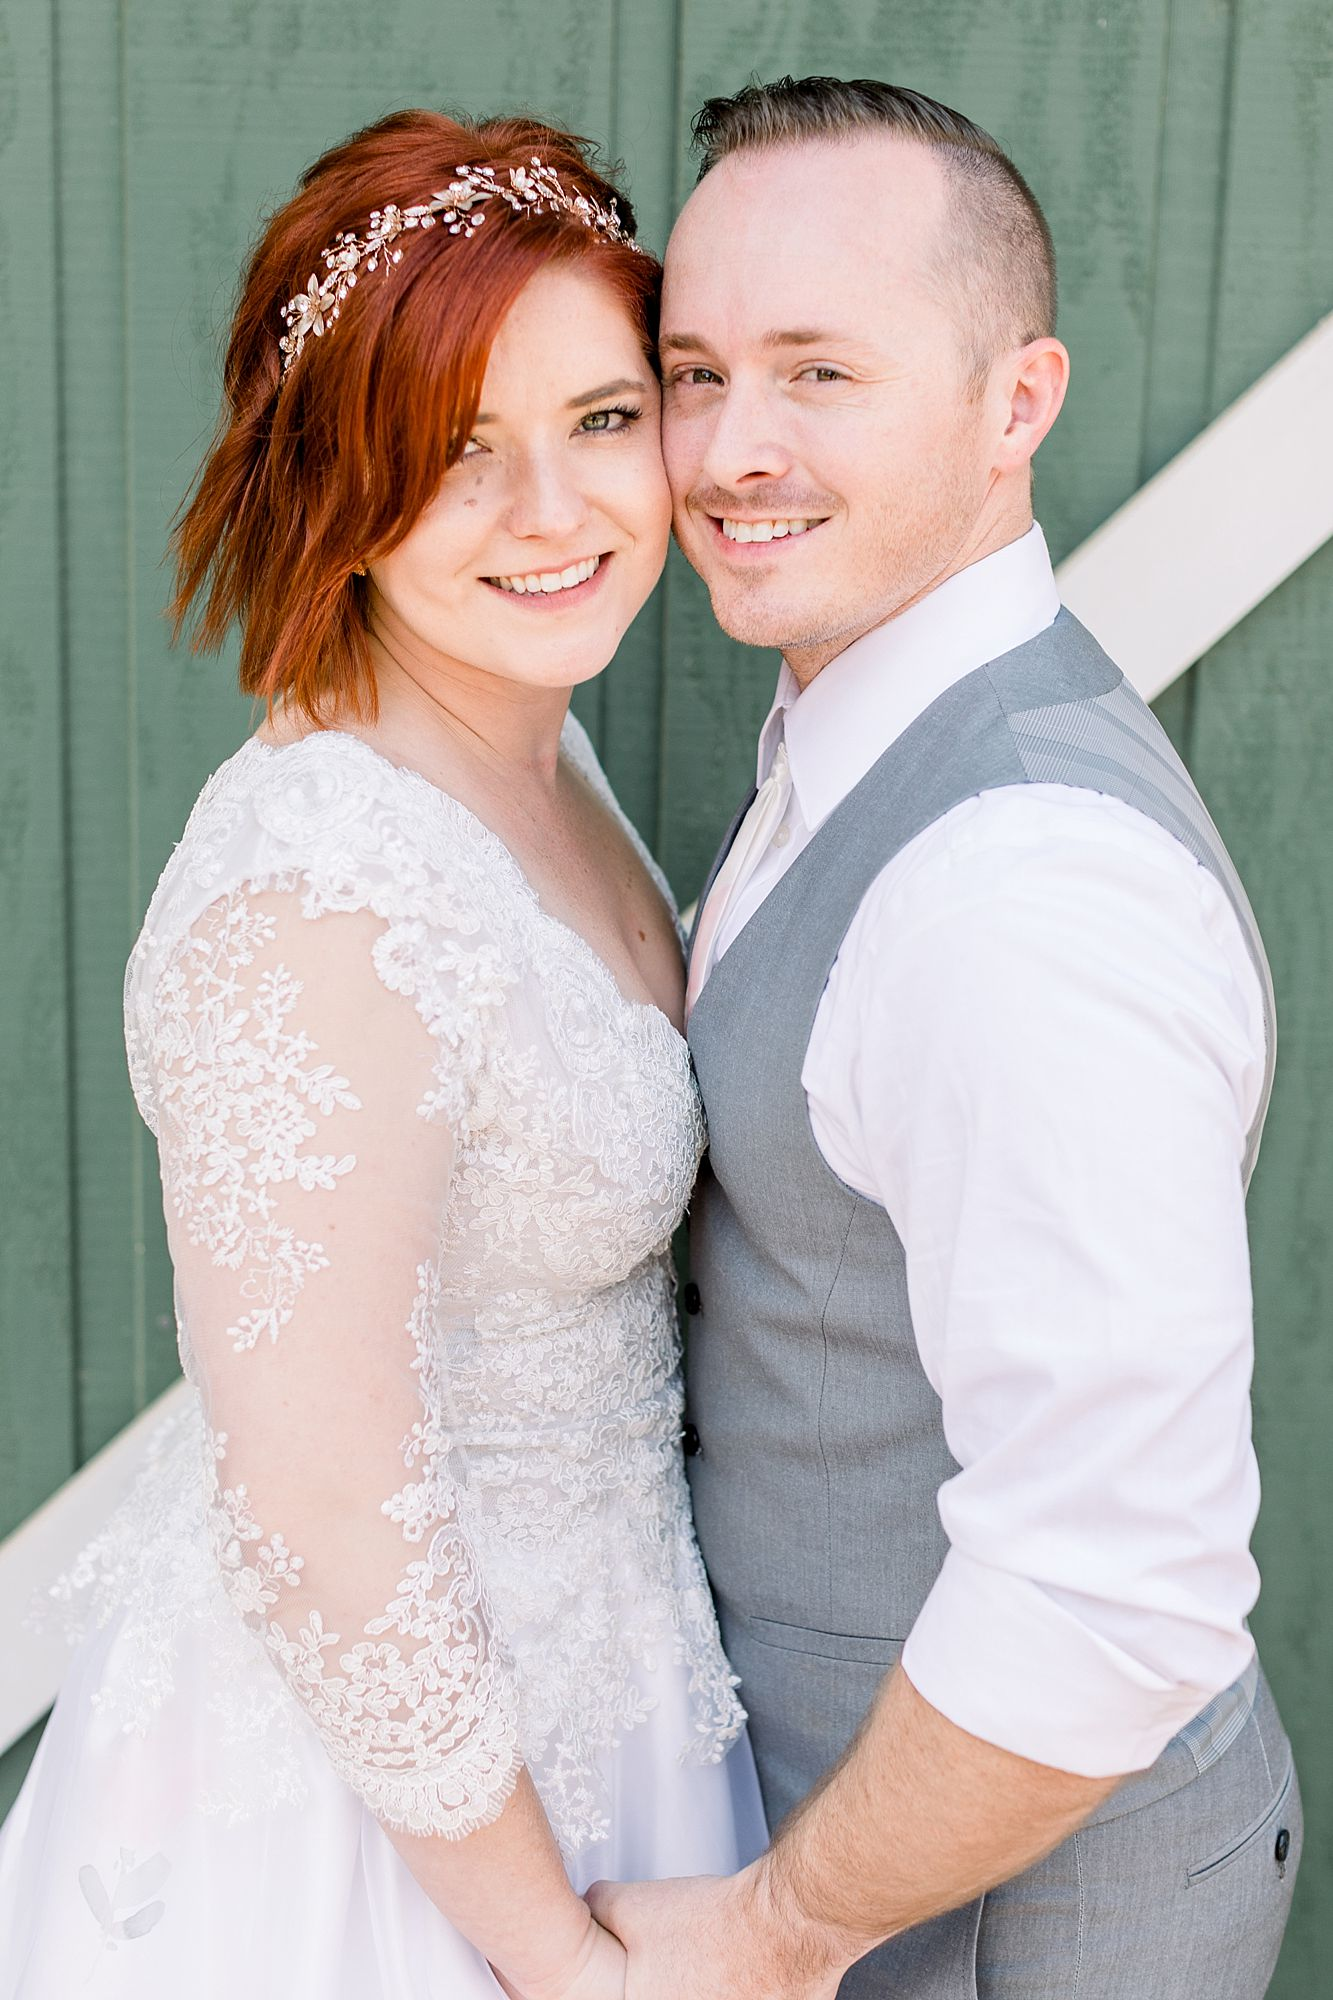 Bishops Pumpkin Farm Wedding - Annie and Logan - Ashley Baumgartner - Wheatland Wedding Photographer_0033.jpg